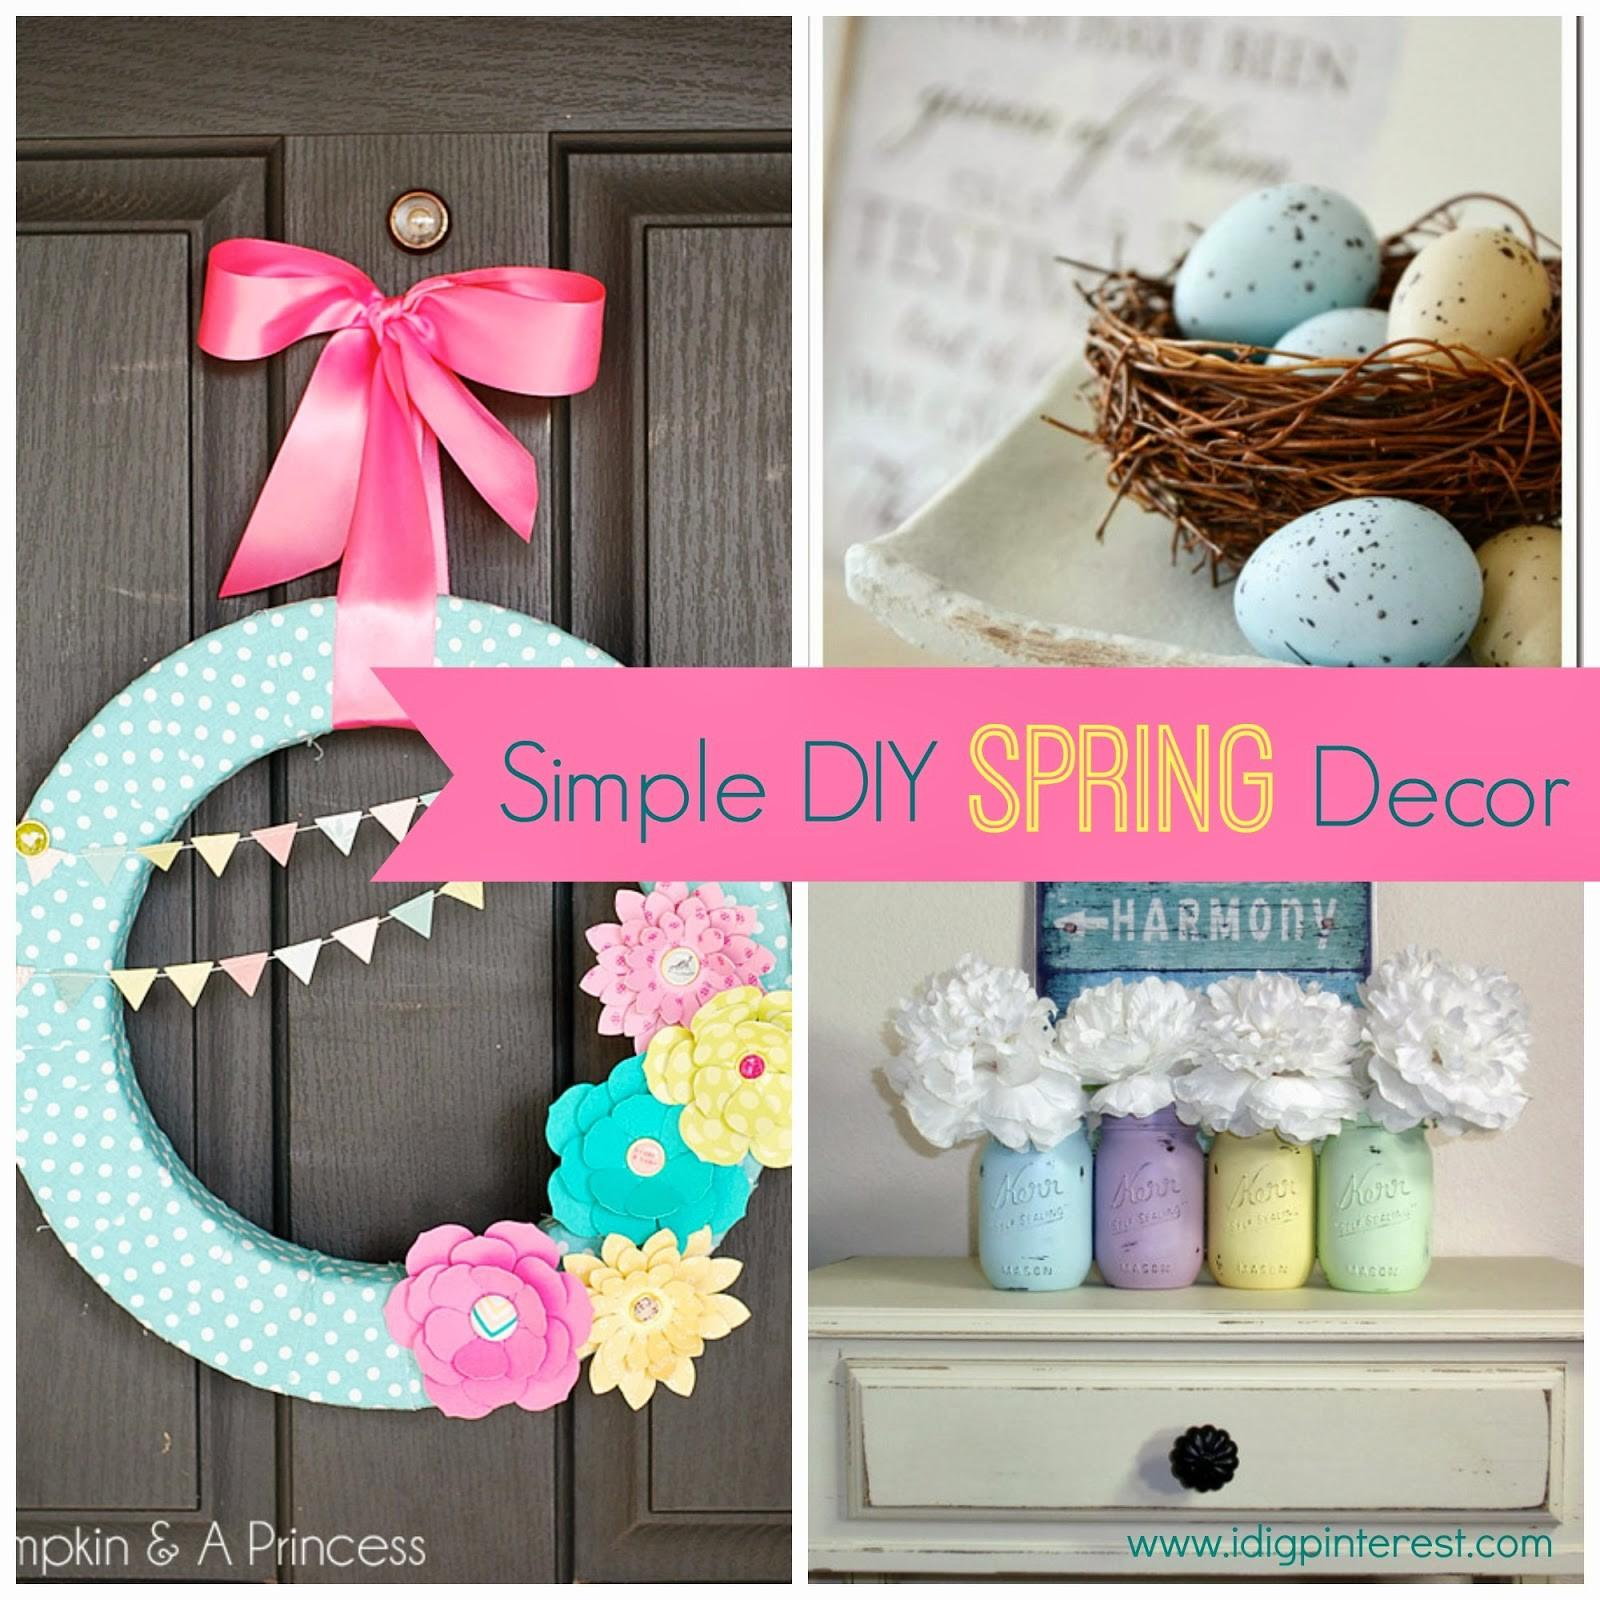 Dig Simple Diy Spring Decor Ideas